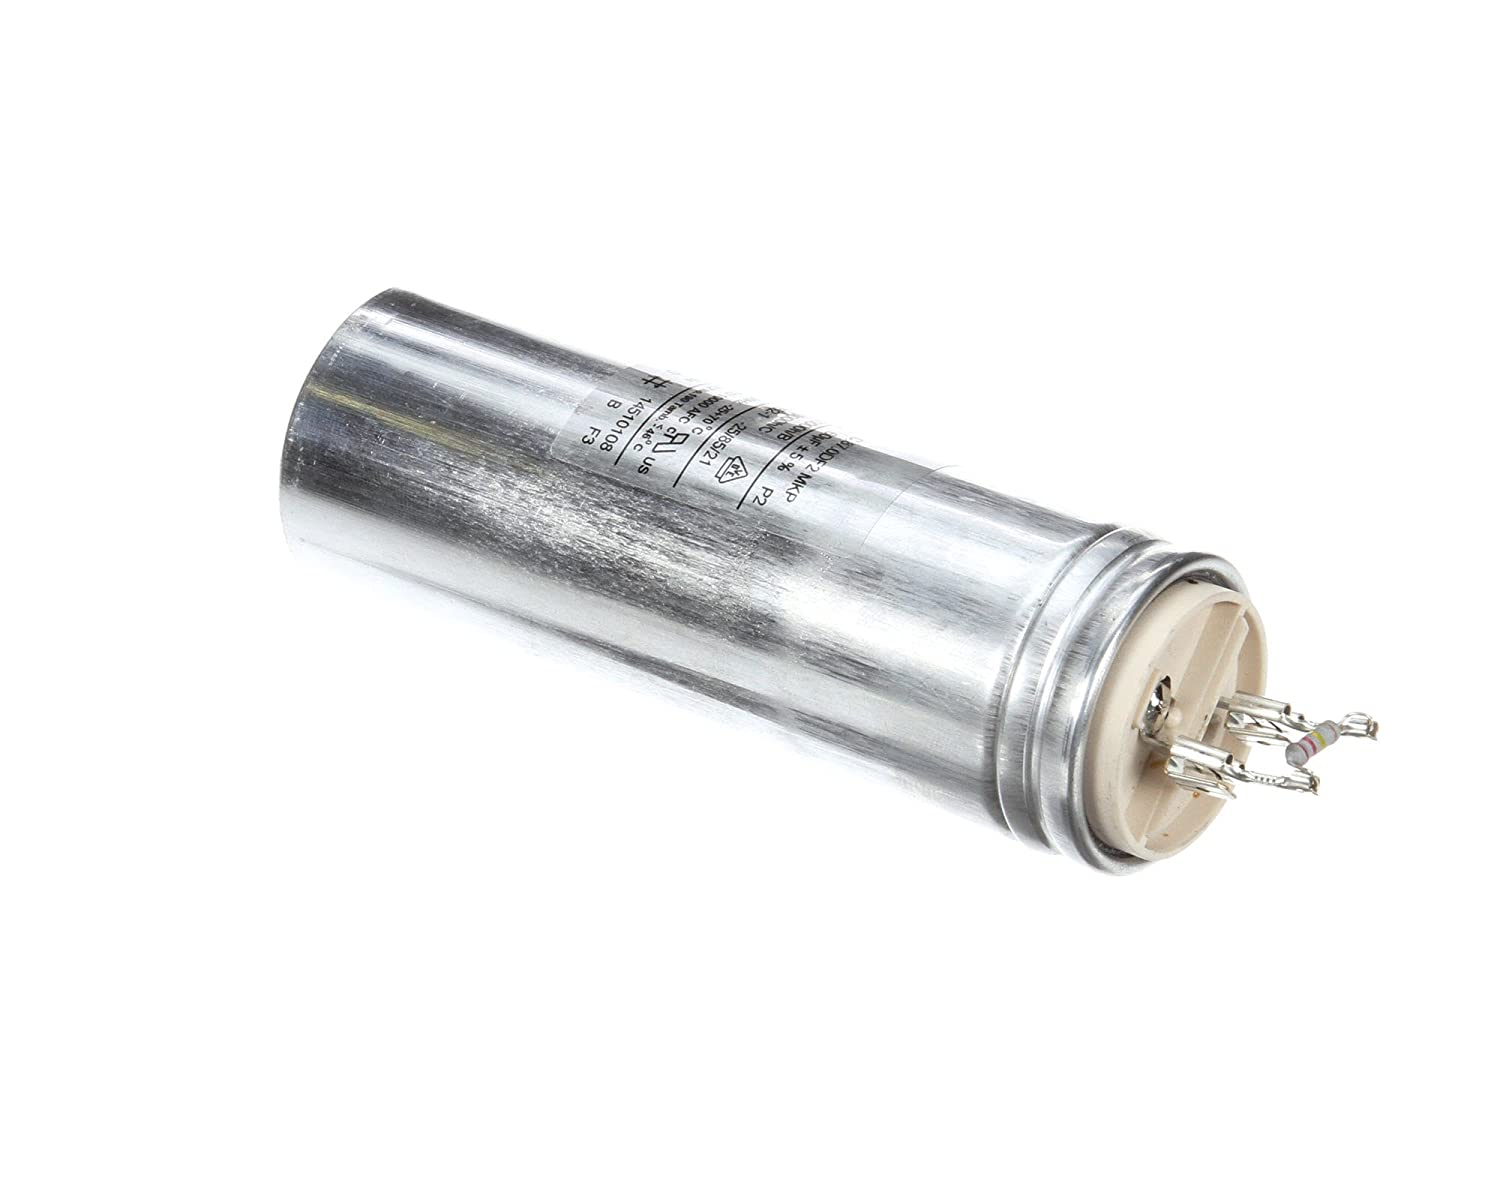 Image of Electrolux Professional 0C4812 Capacitor, 60 Mf Capacitors